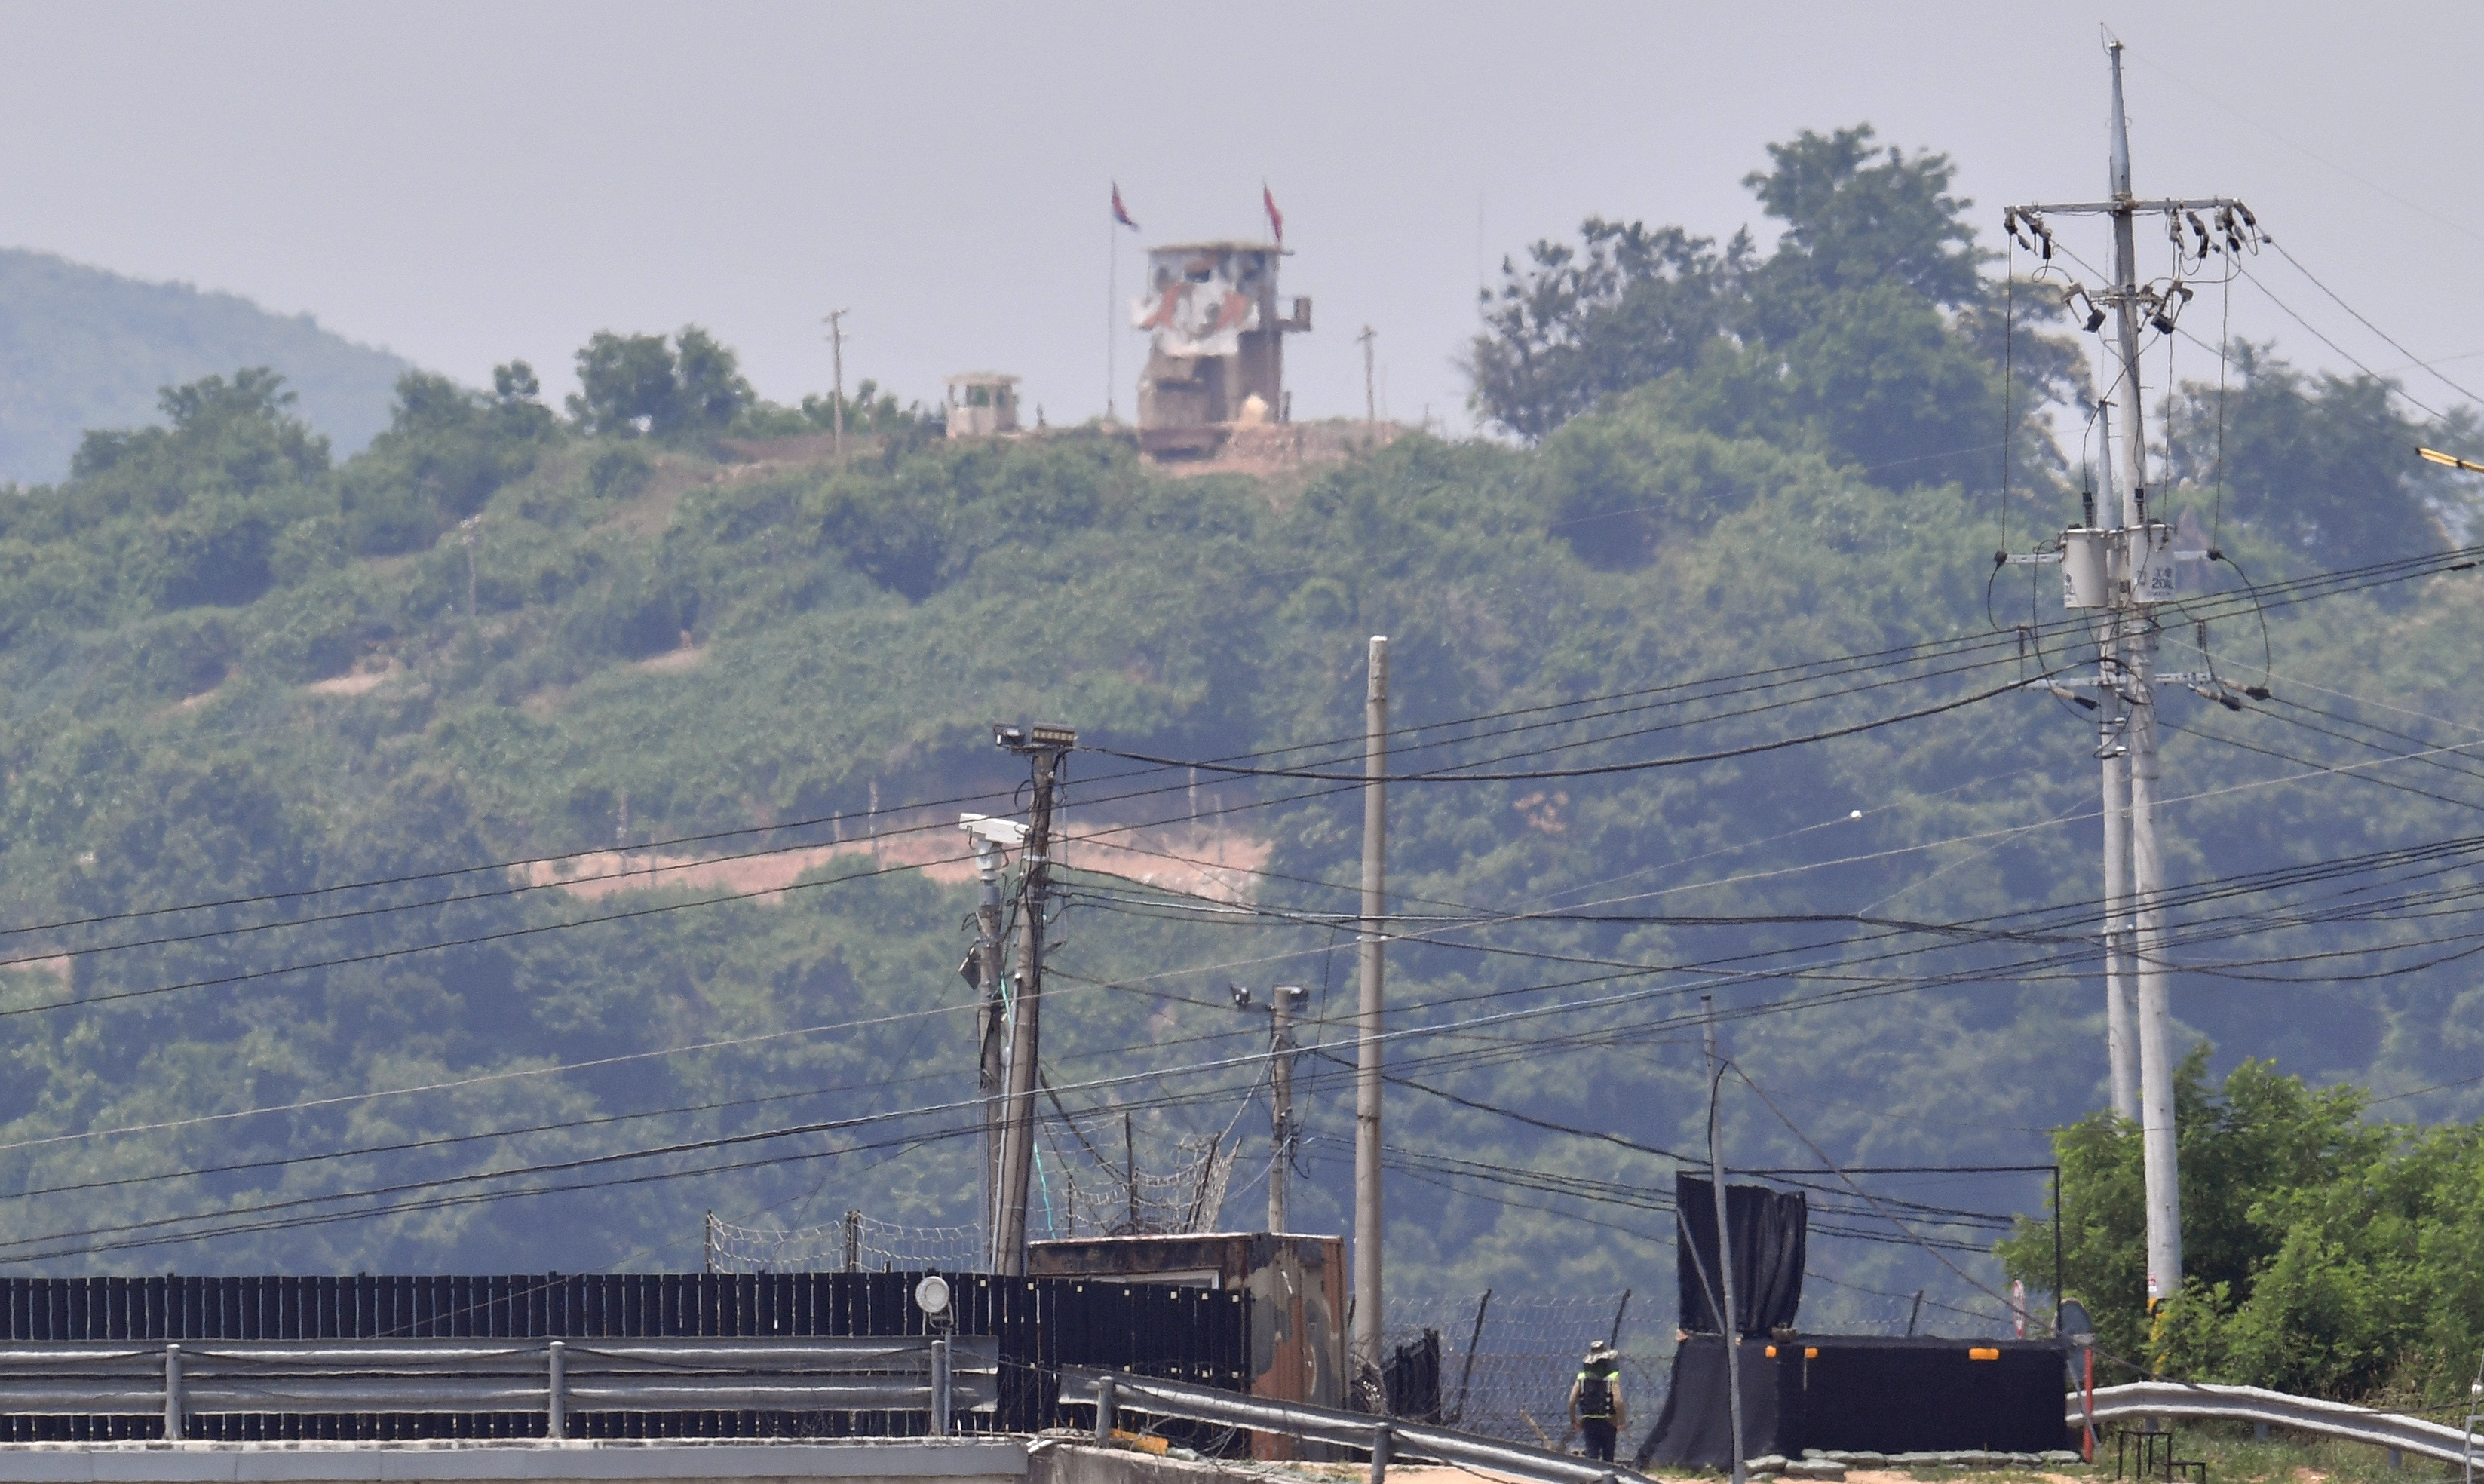 A North Korean guard post (top) is seen over a South Korean military fence (bottom) from the border city of Paju on June 16, 2020. (Photo by JUNG YEON-JE/AFP via Getty Images)